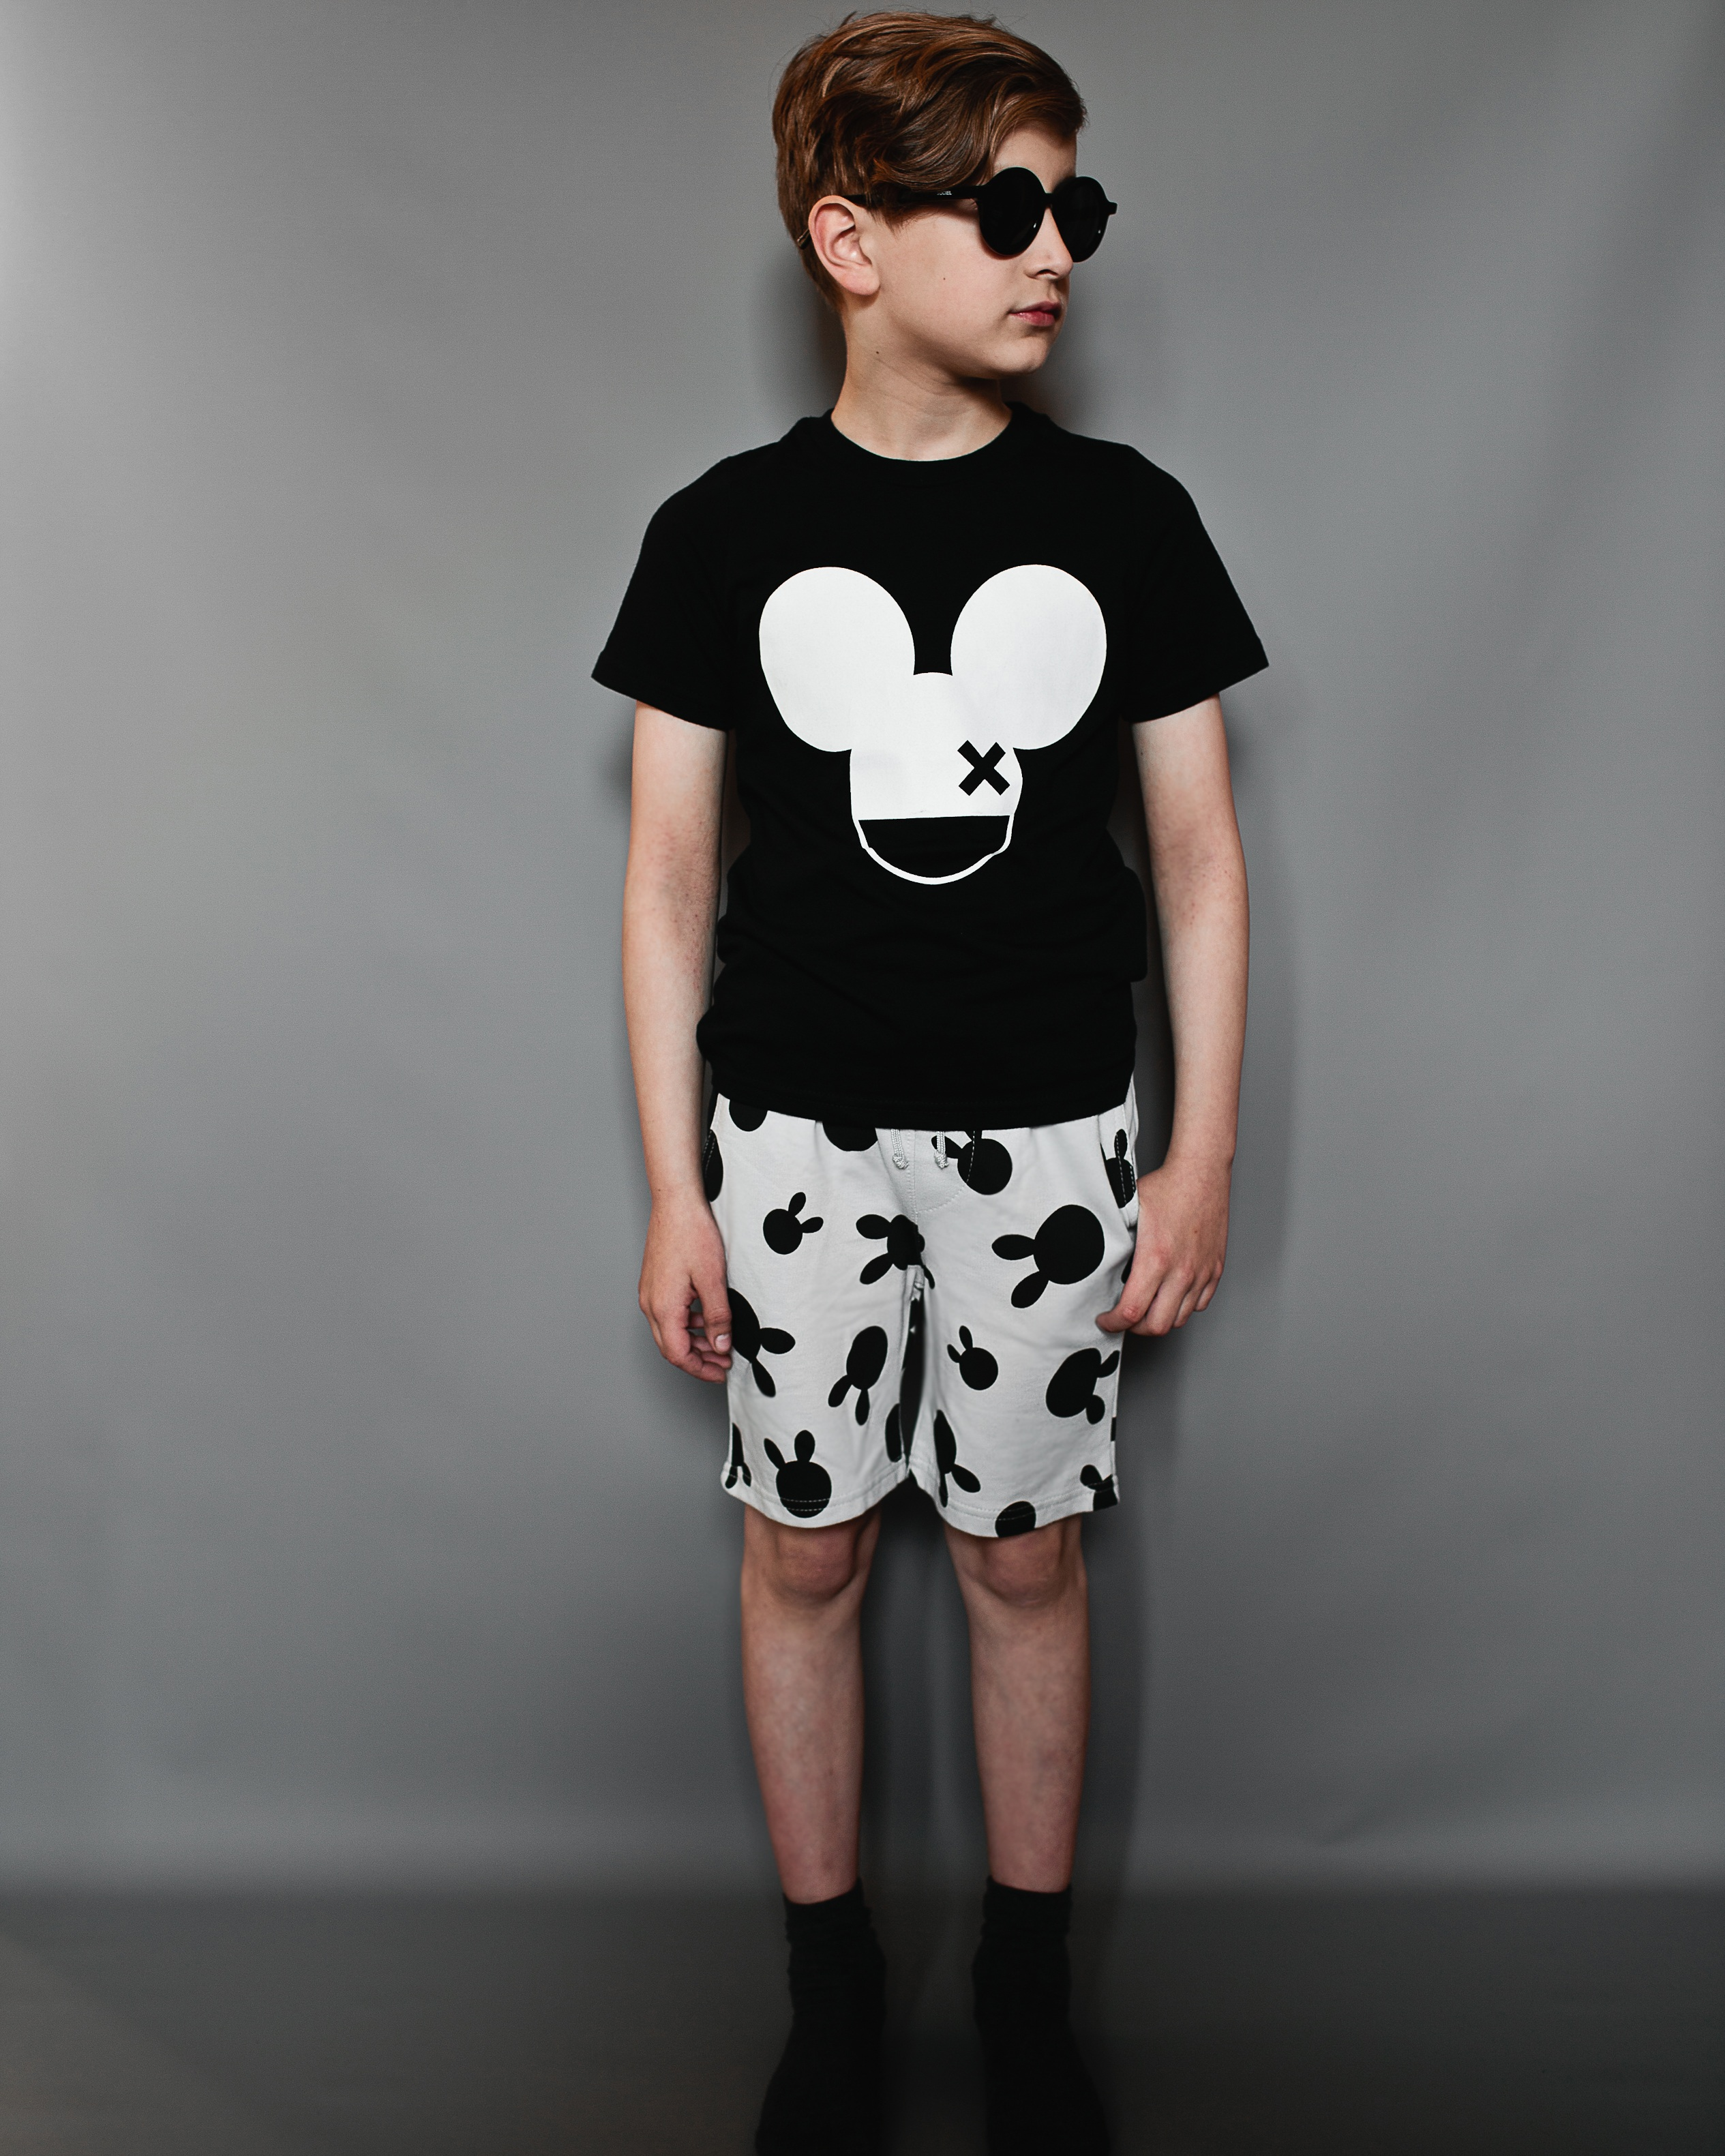 BL Fin T S hirt, Inky Black, Mouse X & Shorts, Oyster, Rabbit Dots